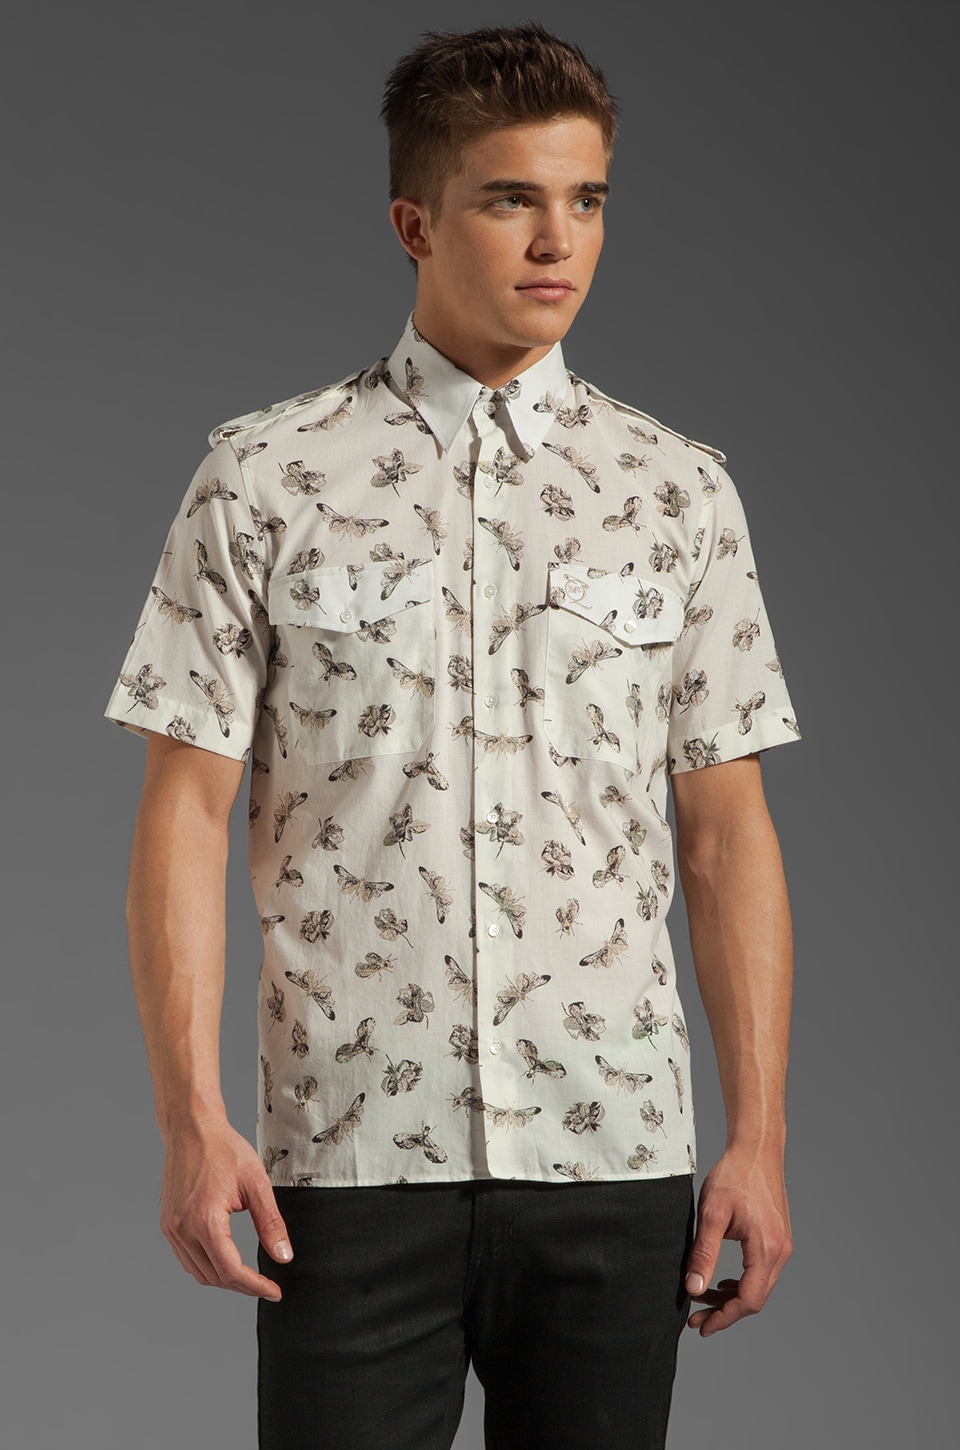 McQ Alexander McQueen S/S Printed Button Up in White